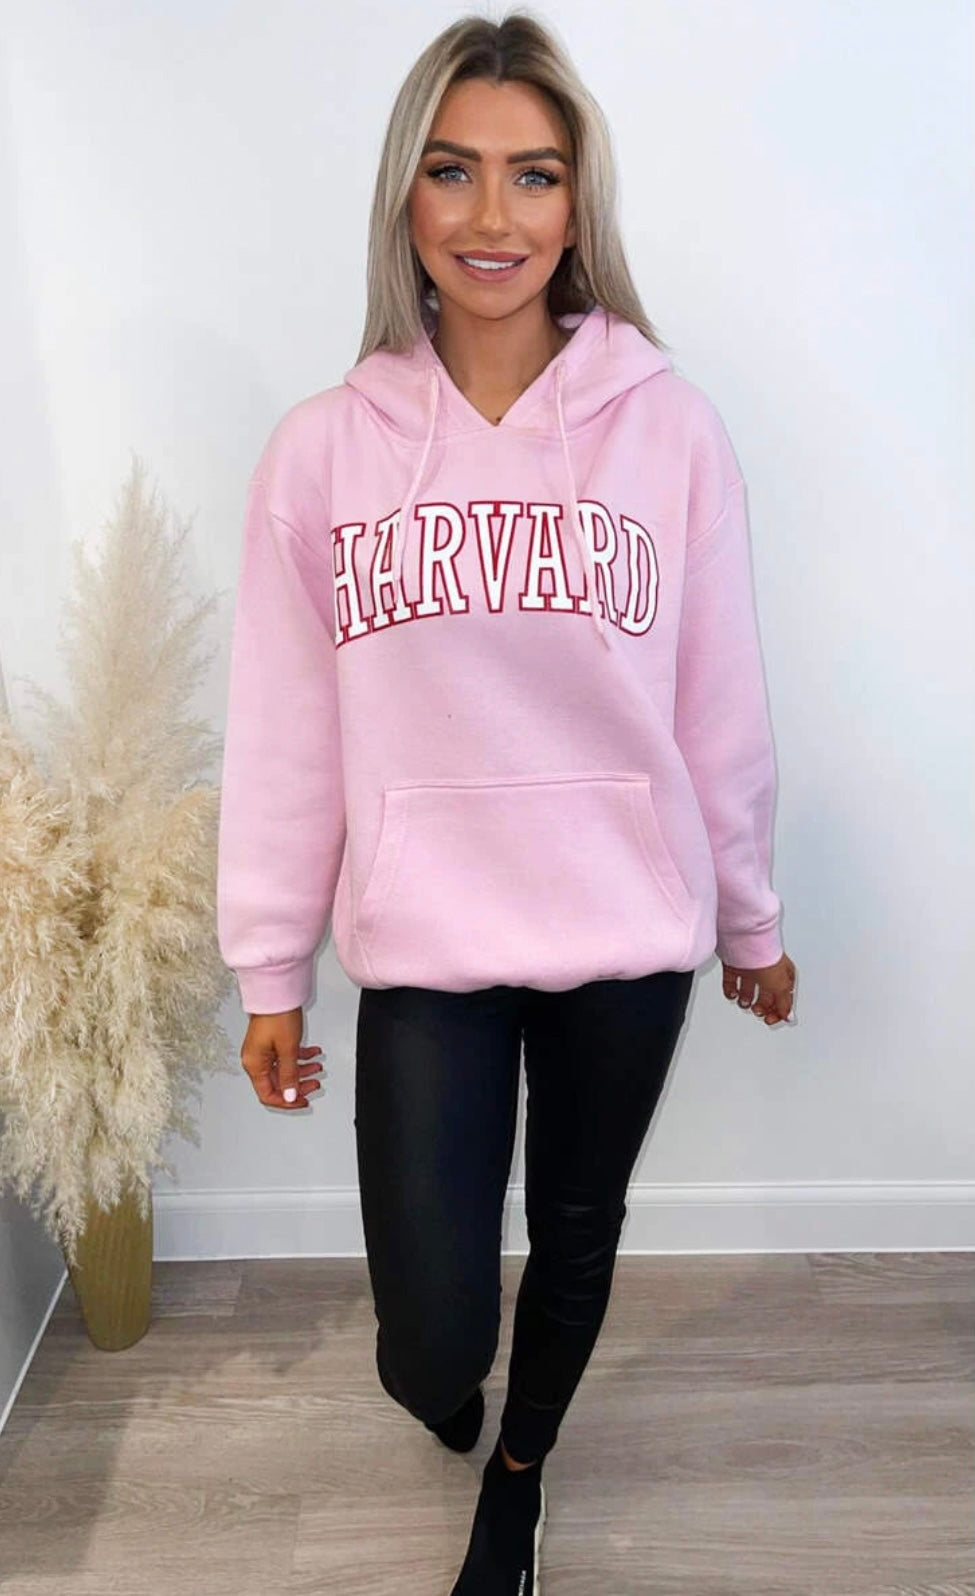 Harvard Jumper Pink